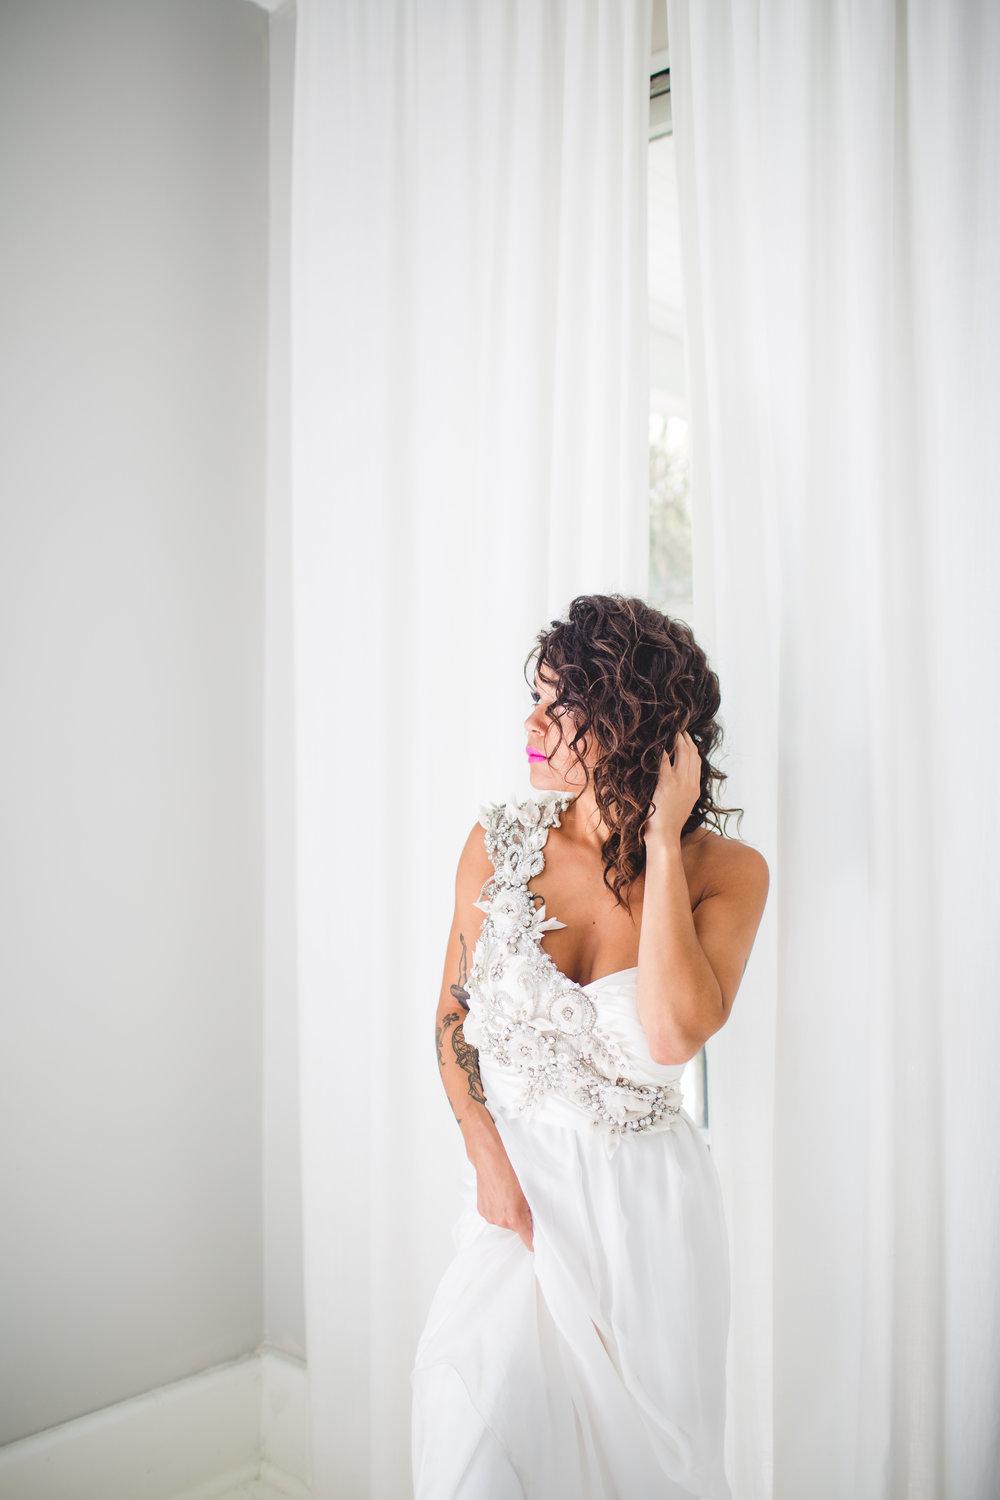 SmittenKickstarter-tash-anna-campbell-beaded-one-shoulder-wedding-dress-ivory-and-beau-savannah-bridal-boutique-savannah-wedding-dresses-designer-wedding-dresses-one-shoulder-wedding-dress.jpg